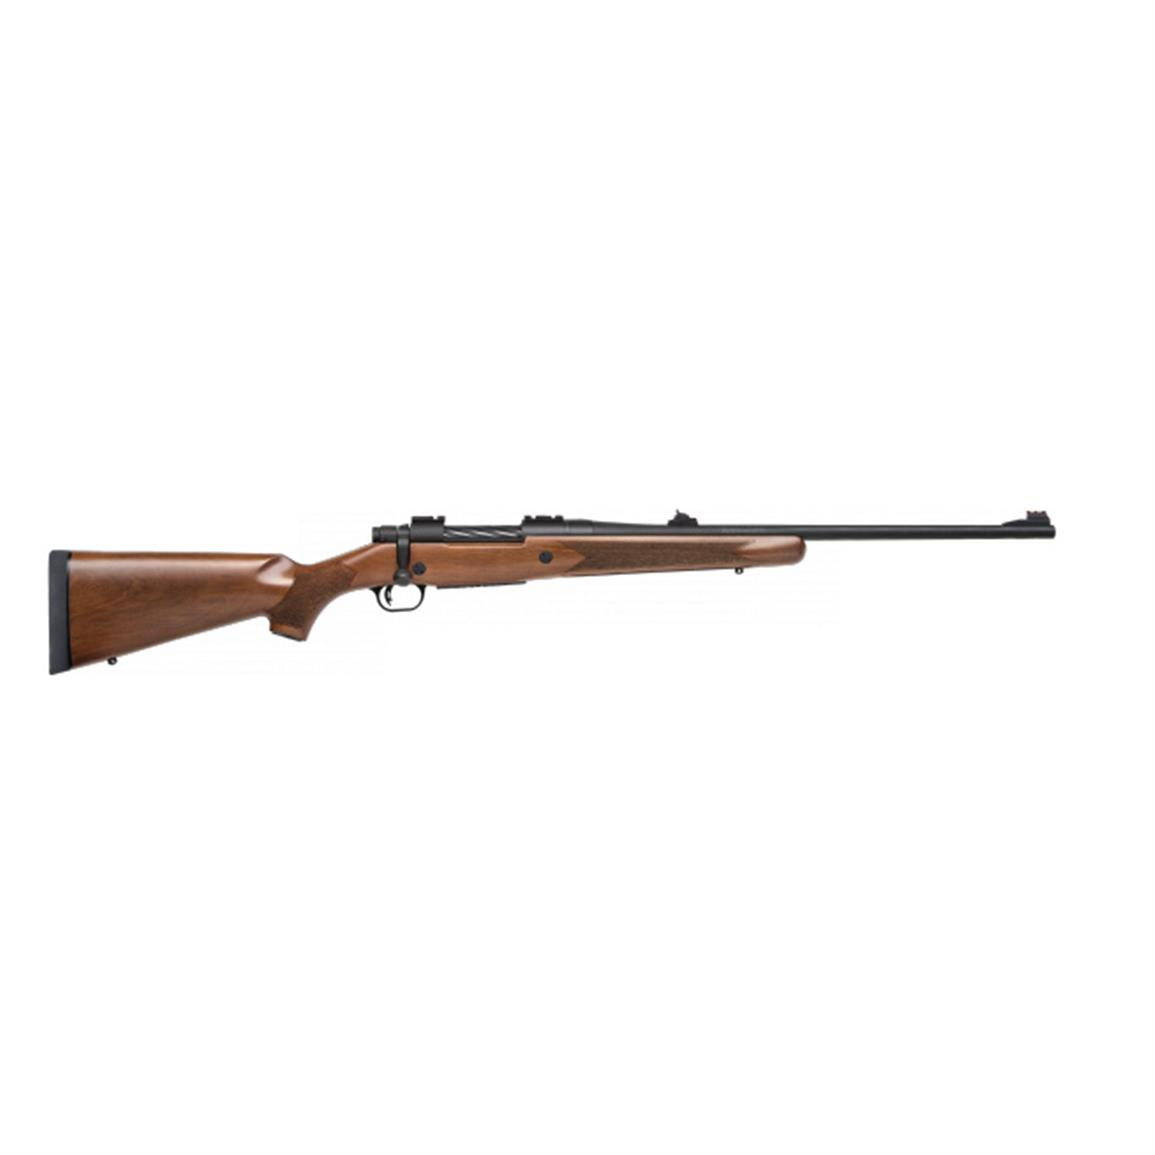 Mossberg Patriot, Bolt Action, .338 Winchester Magnum, Centerfire, 27908, 015813279086